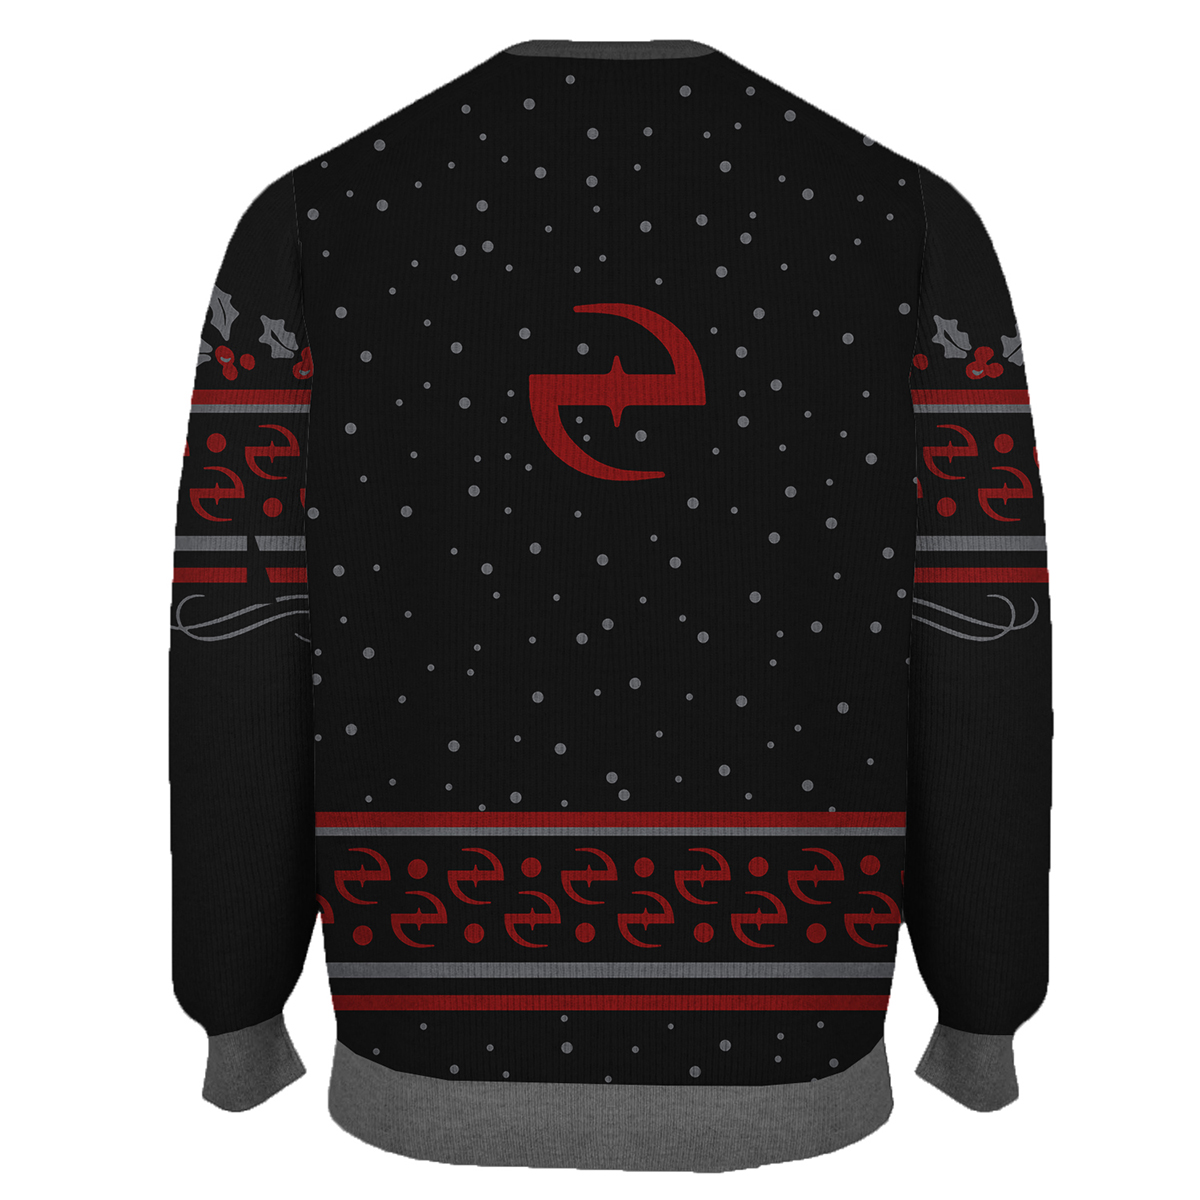 Evanescence Woven Holiday Sweater